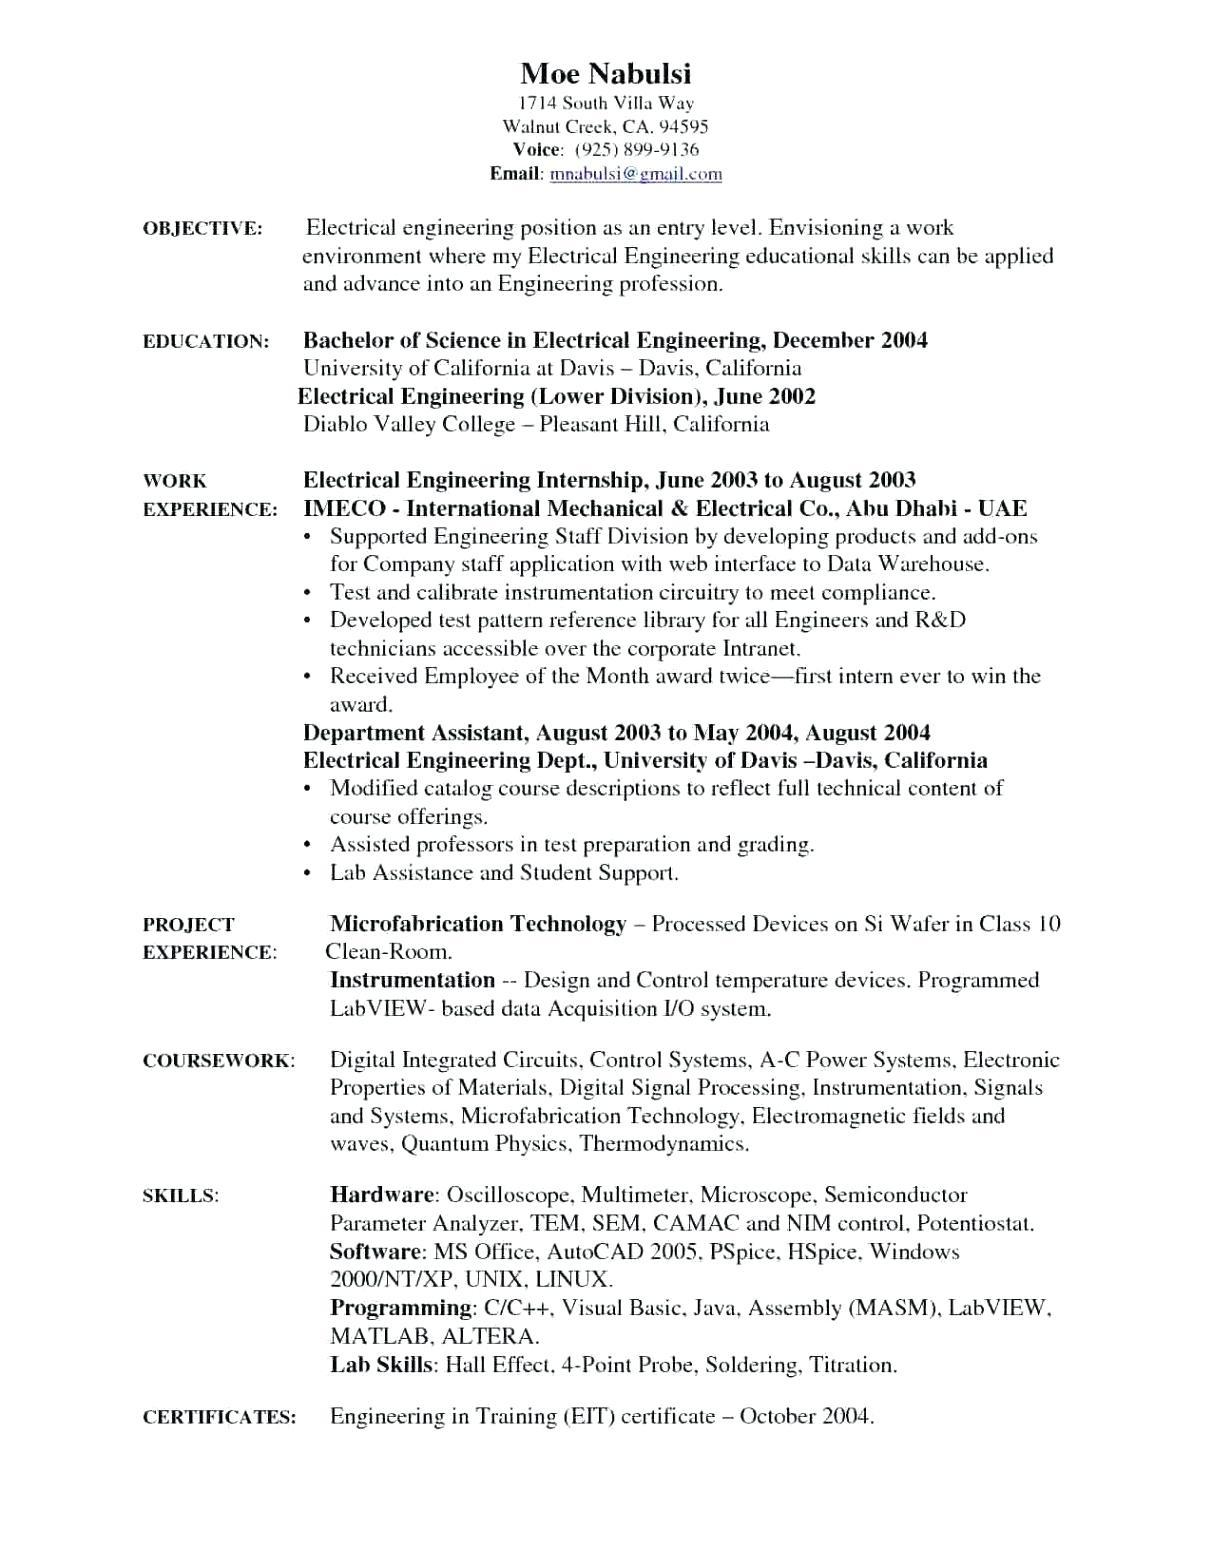 93 Beautiful Electrical Engineering Resume Sample For Freshers for Gallery